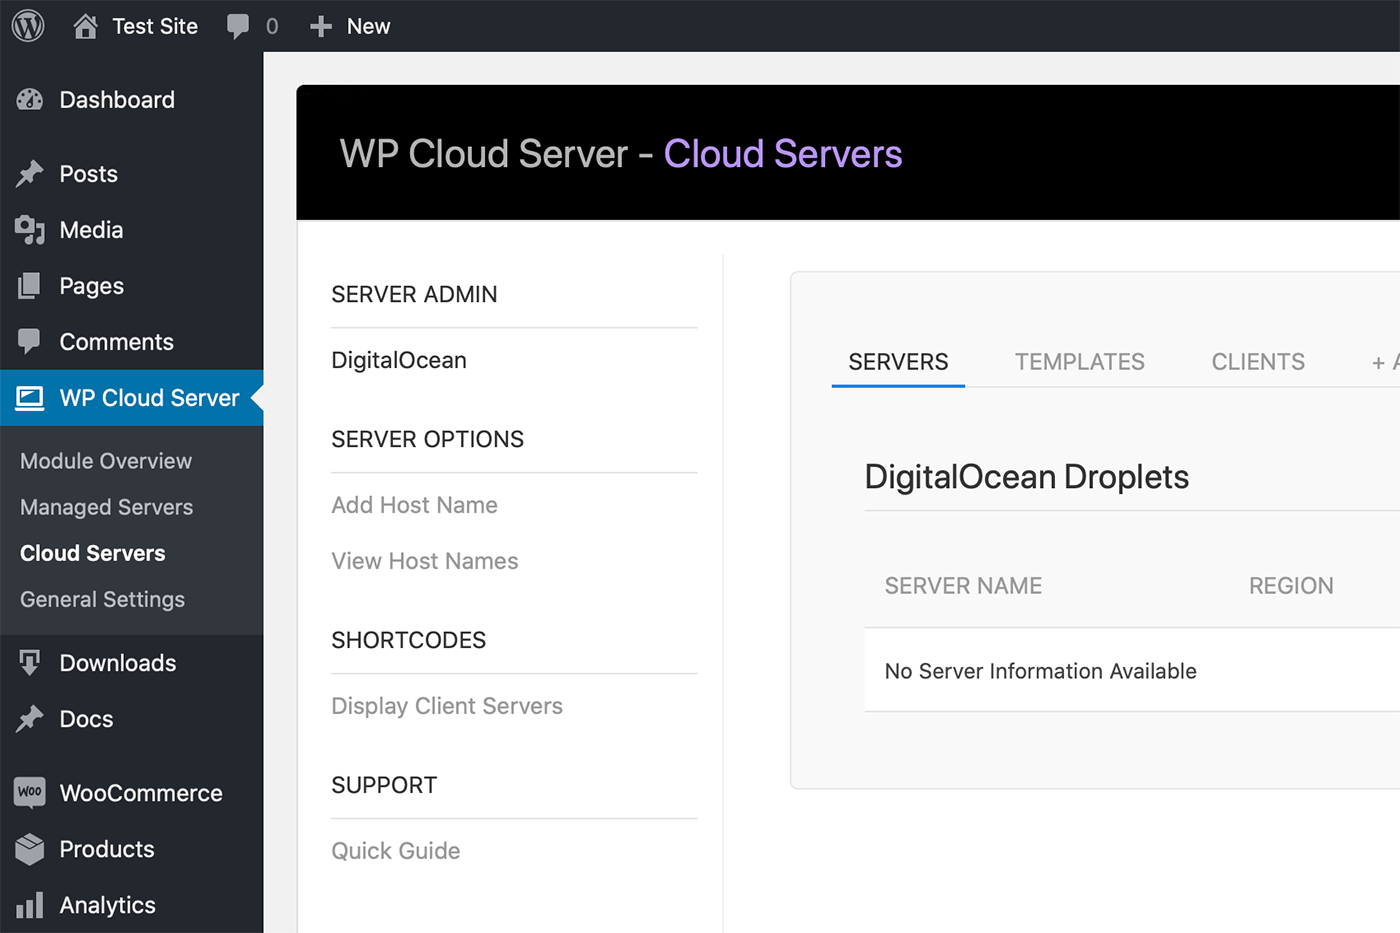 WP Cloud Server DigitalOcean Module